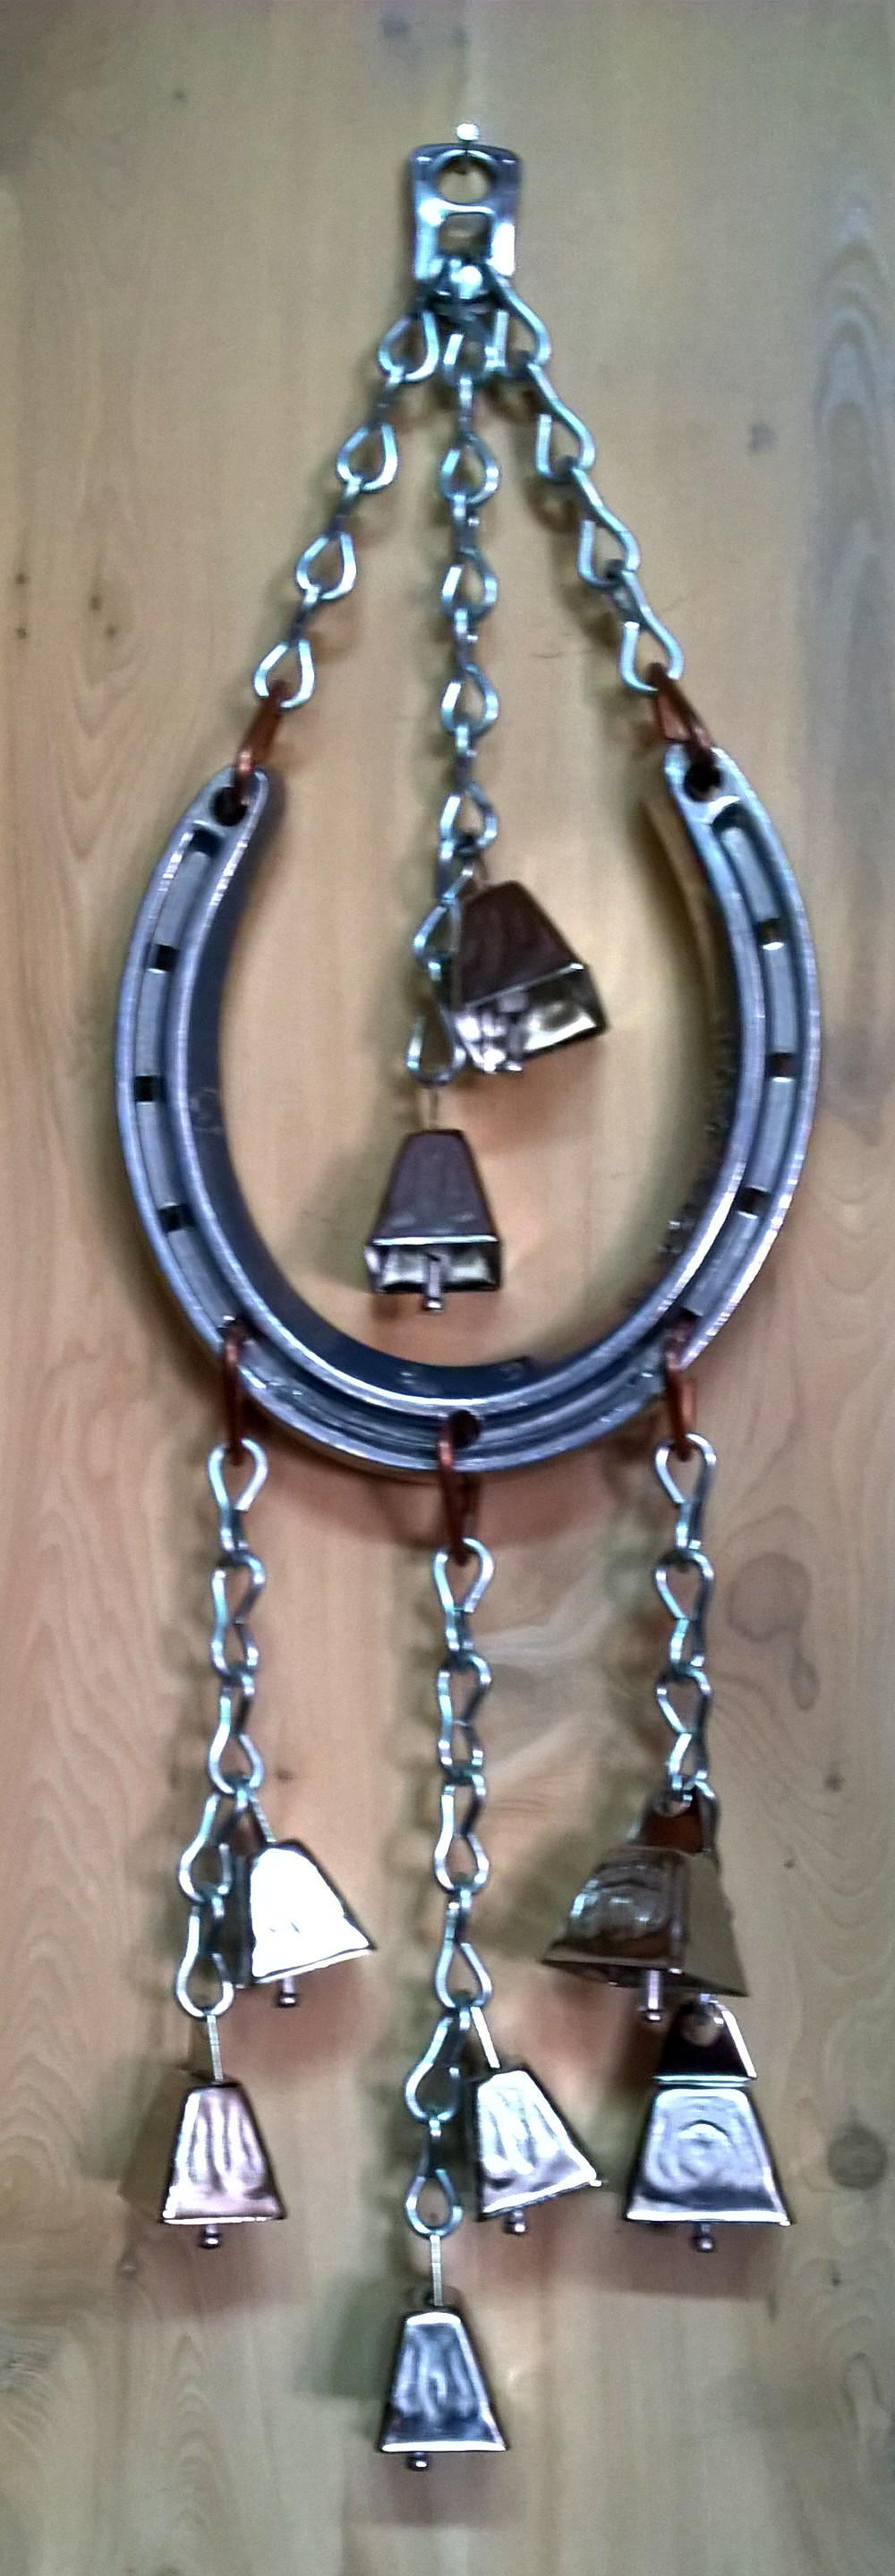 Thoroughbred Horse Shoe Wind Chime